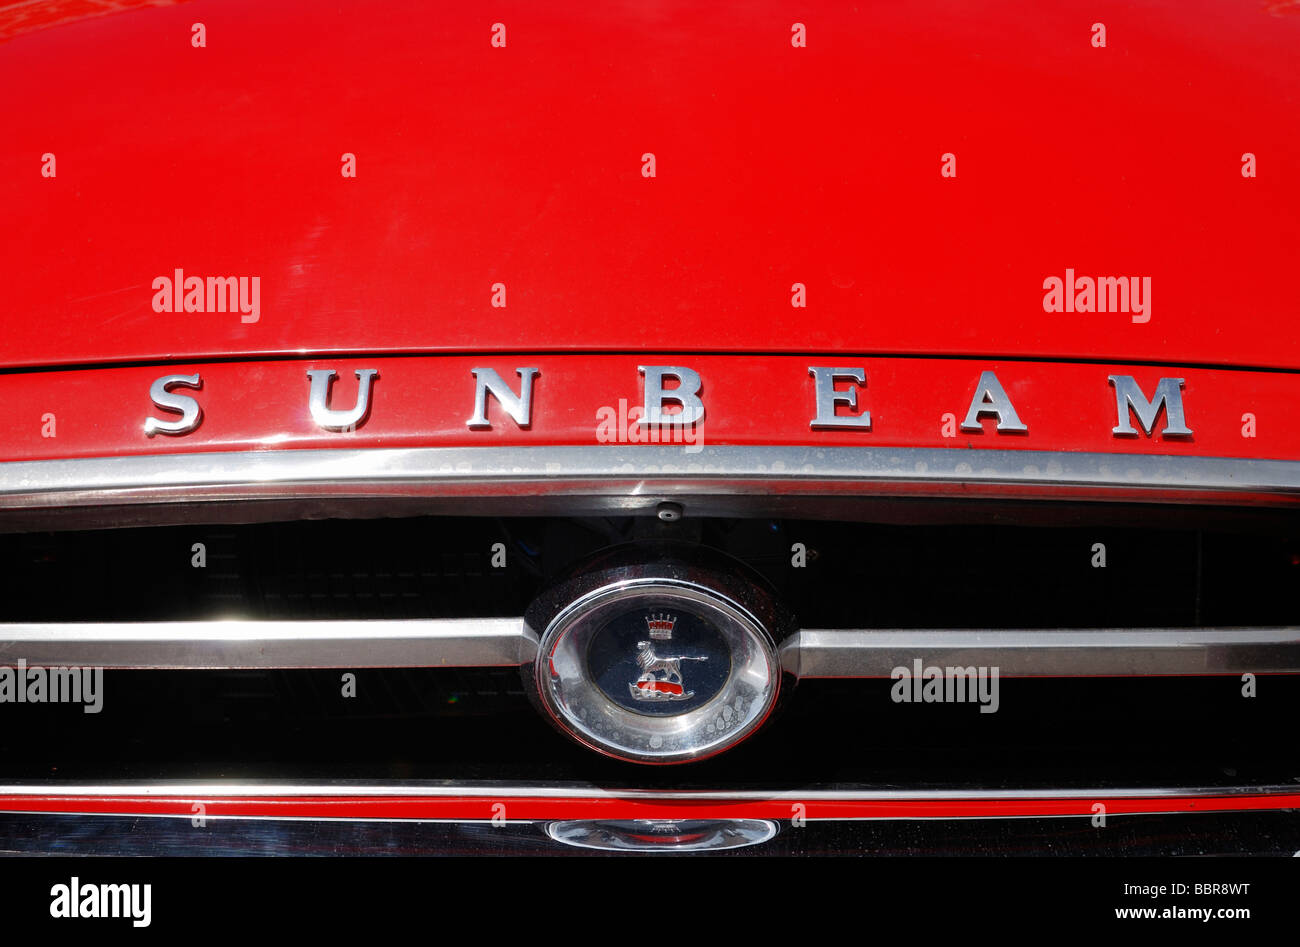 A Sunbeam badge and motif on a red bonnet - Stock Image